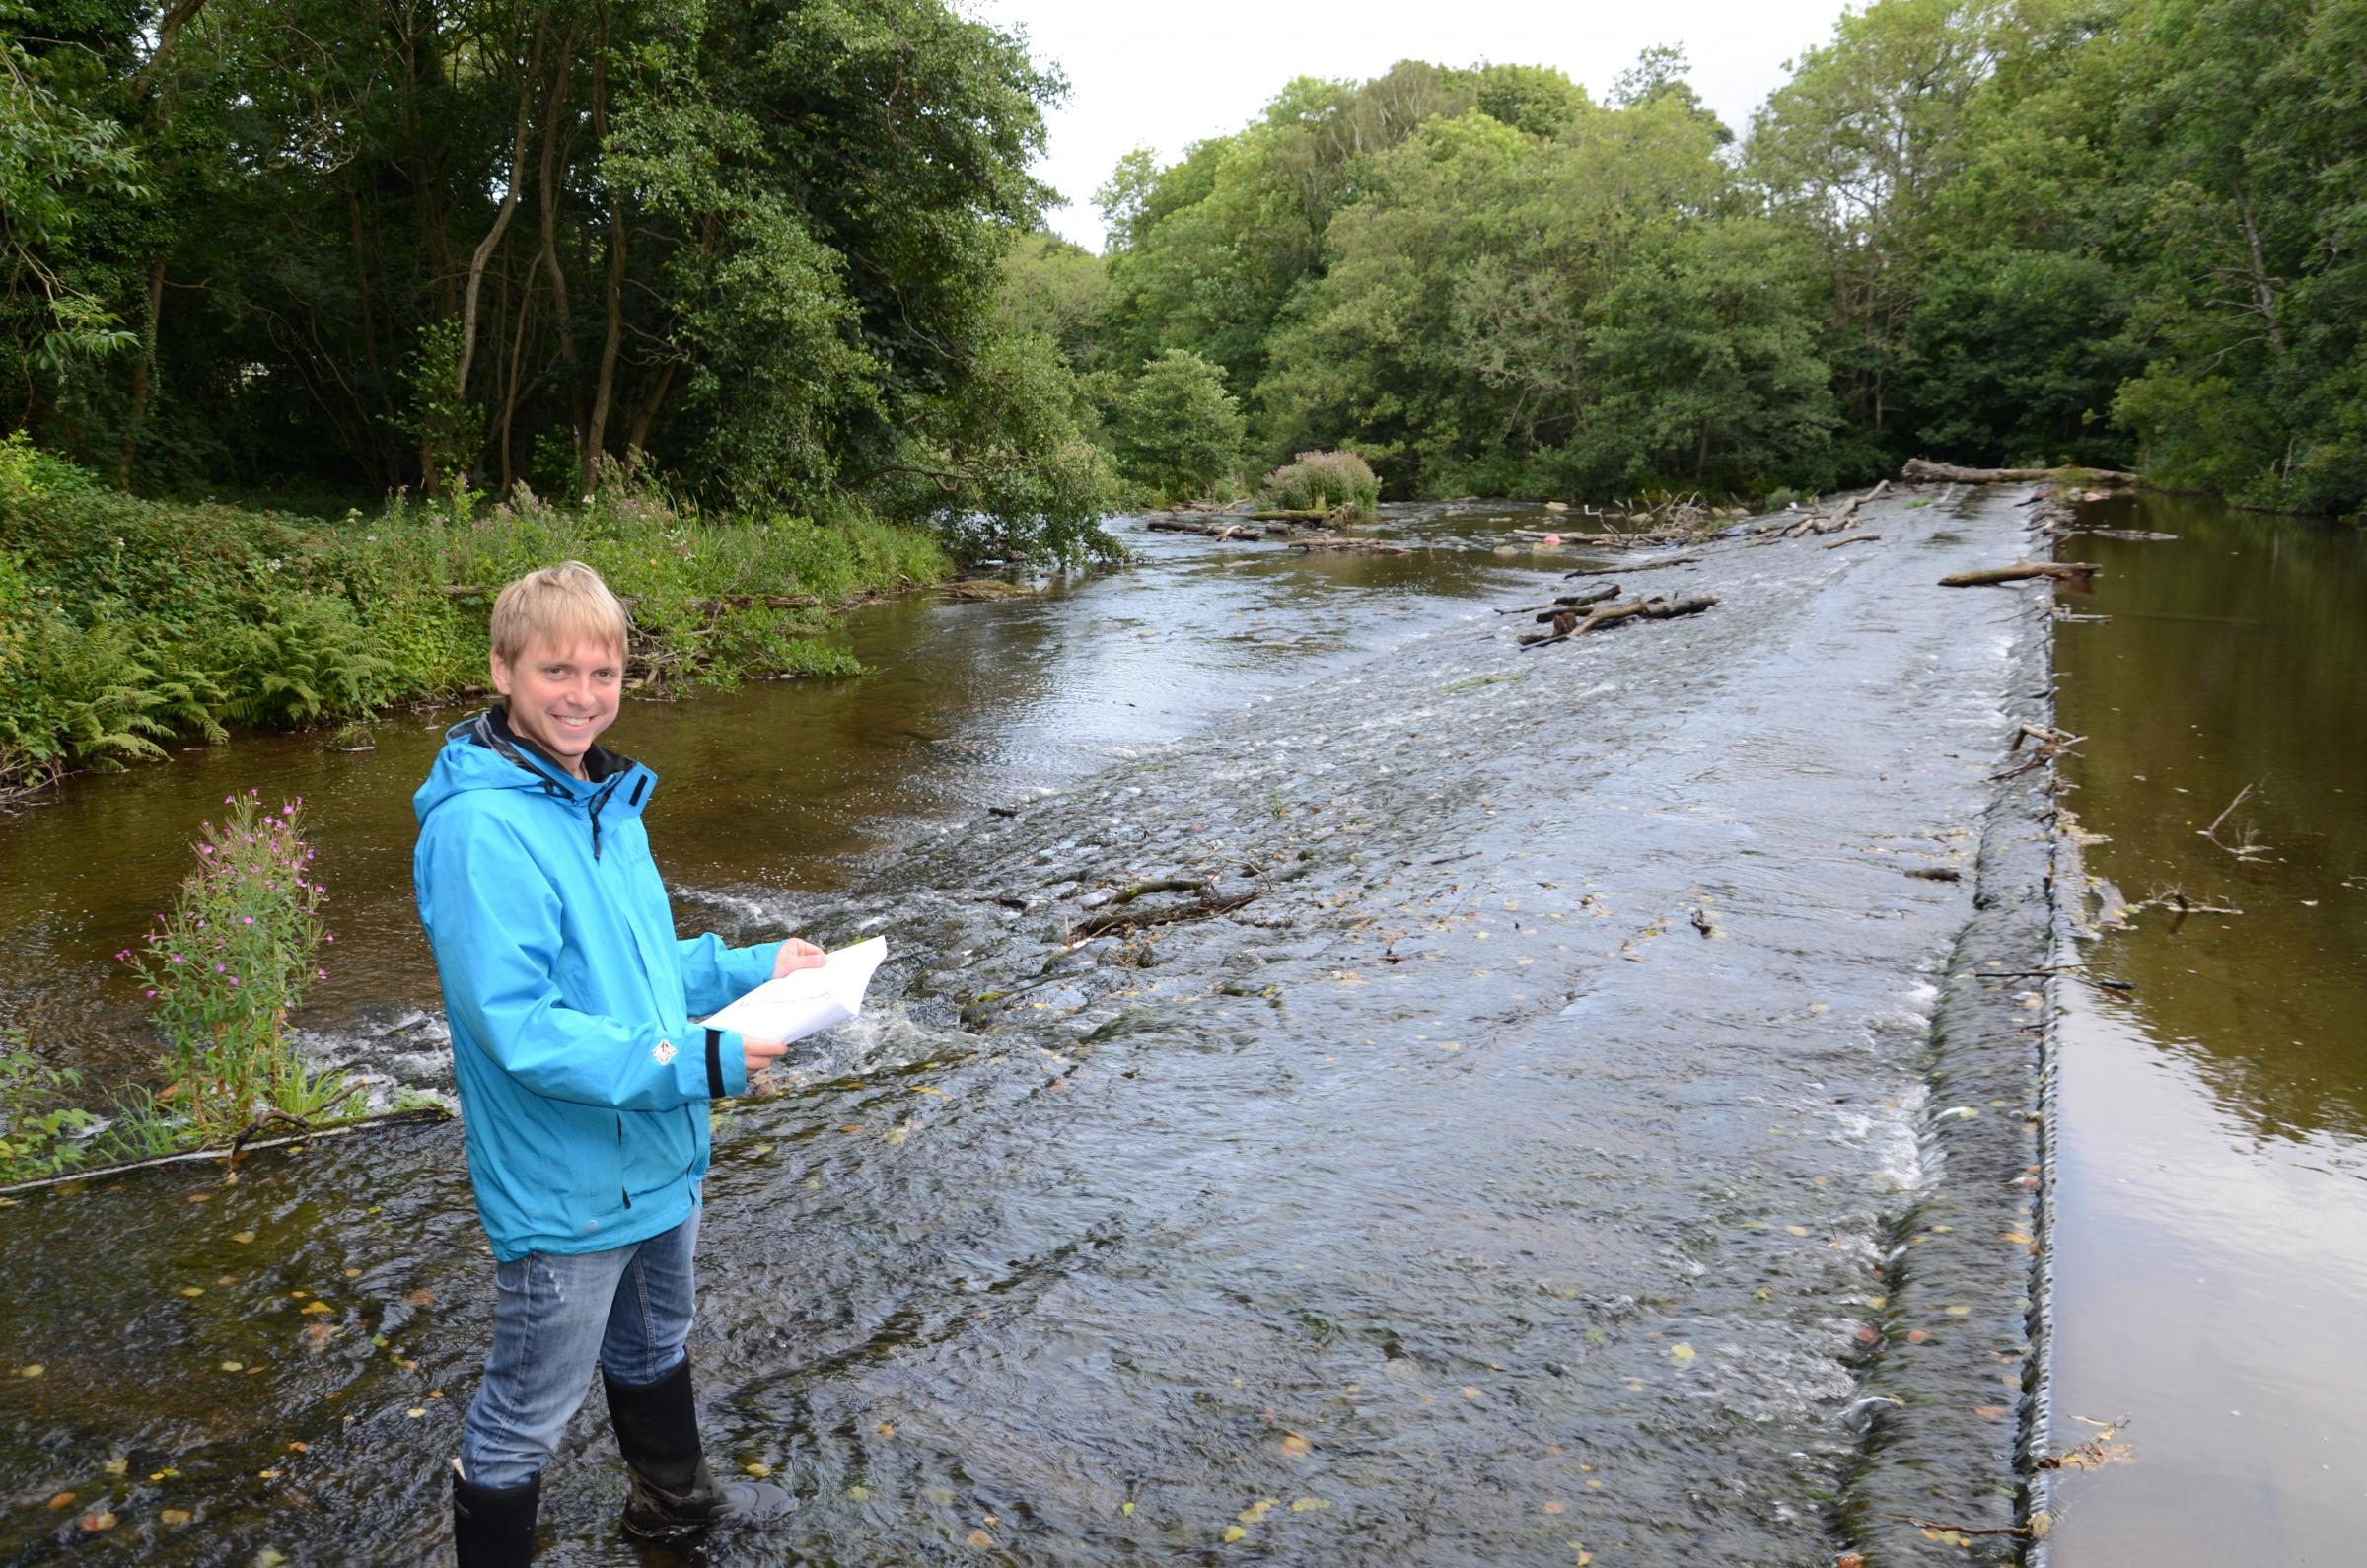 PROJECT: Jack Bloomer, Tyne Rivers Trust deputy director, at Shotley Grove weir, where work is about to start to increase fish populations on the River Derwent. The work is expected to take six weeks.